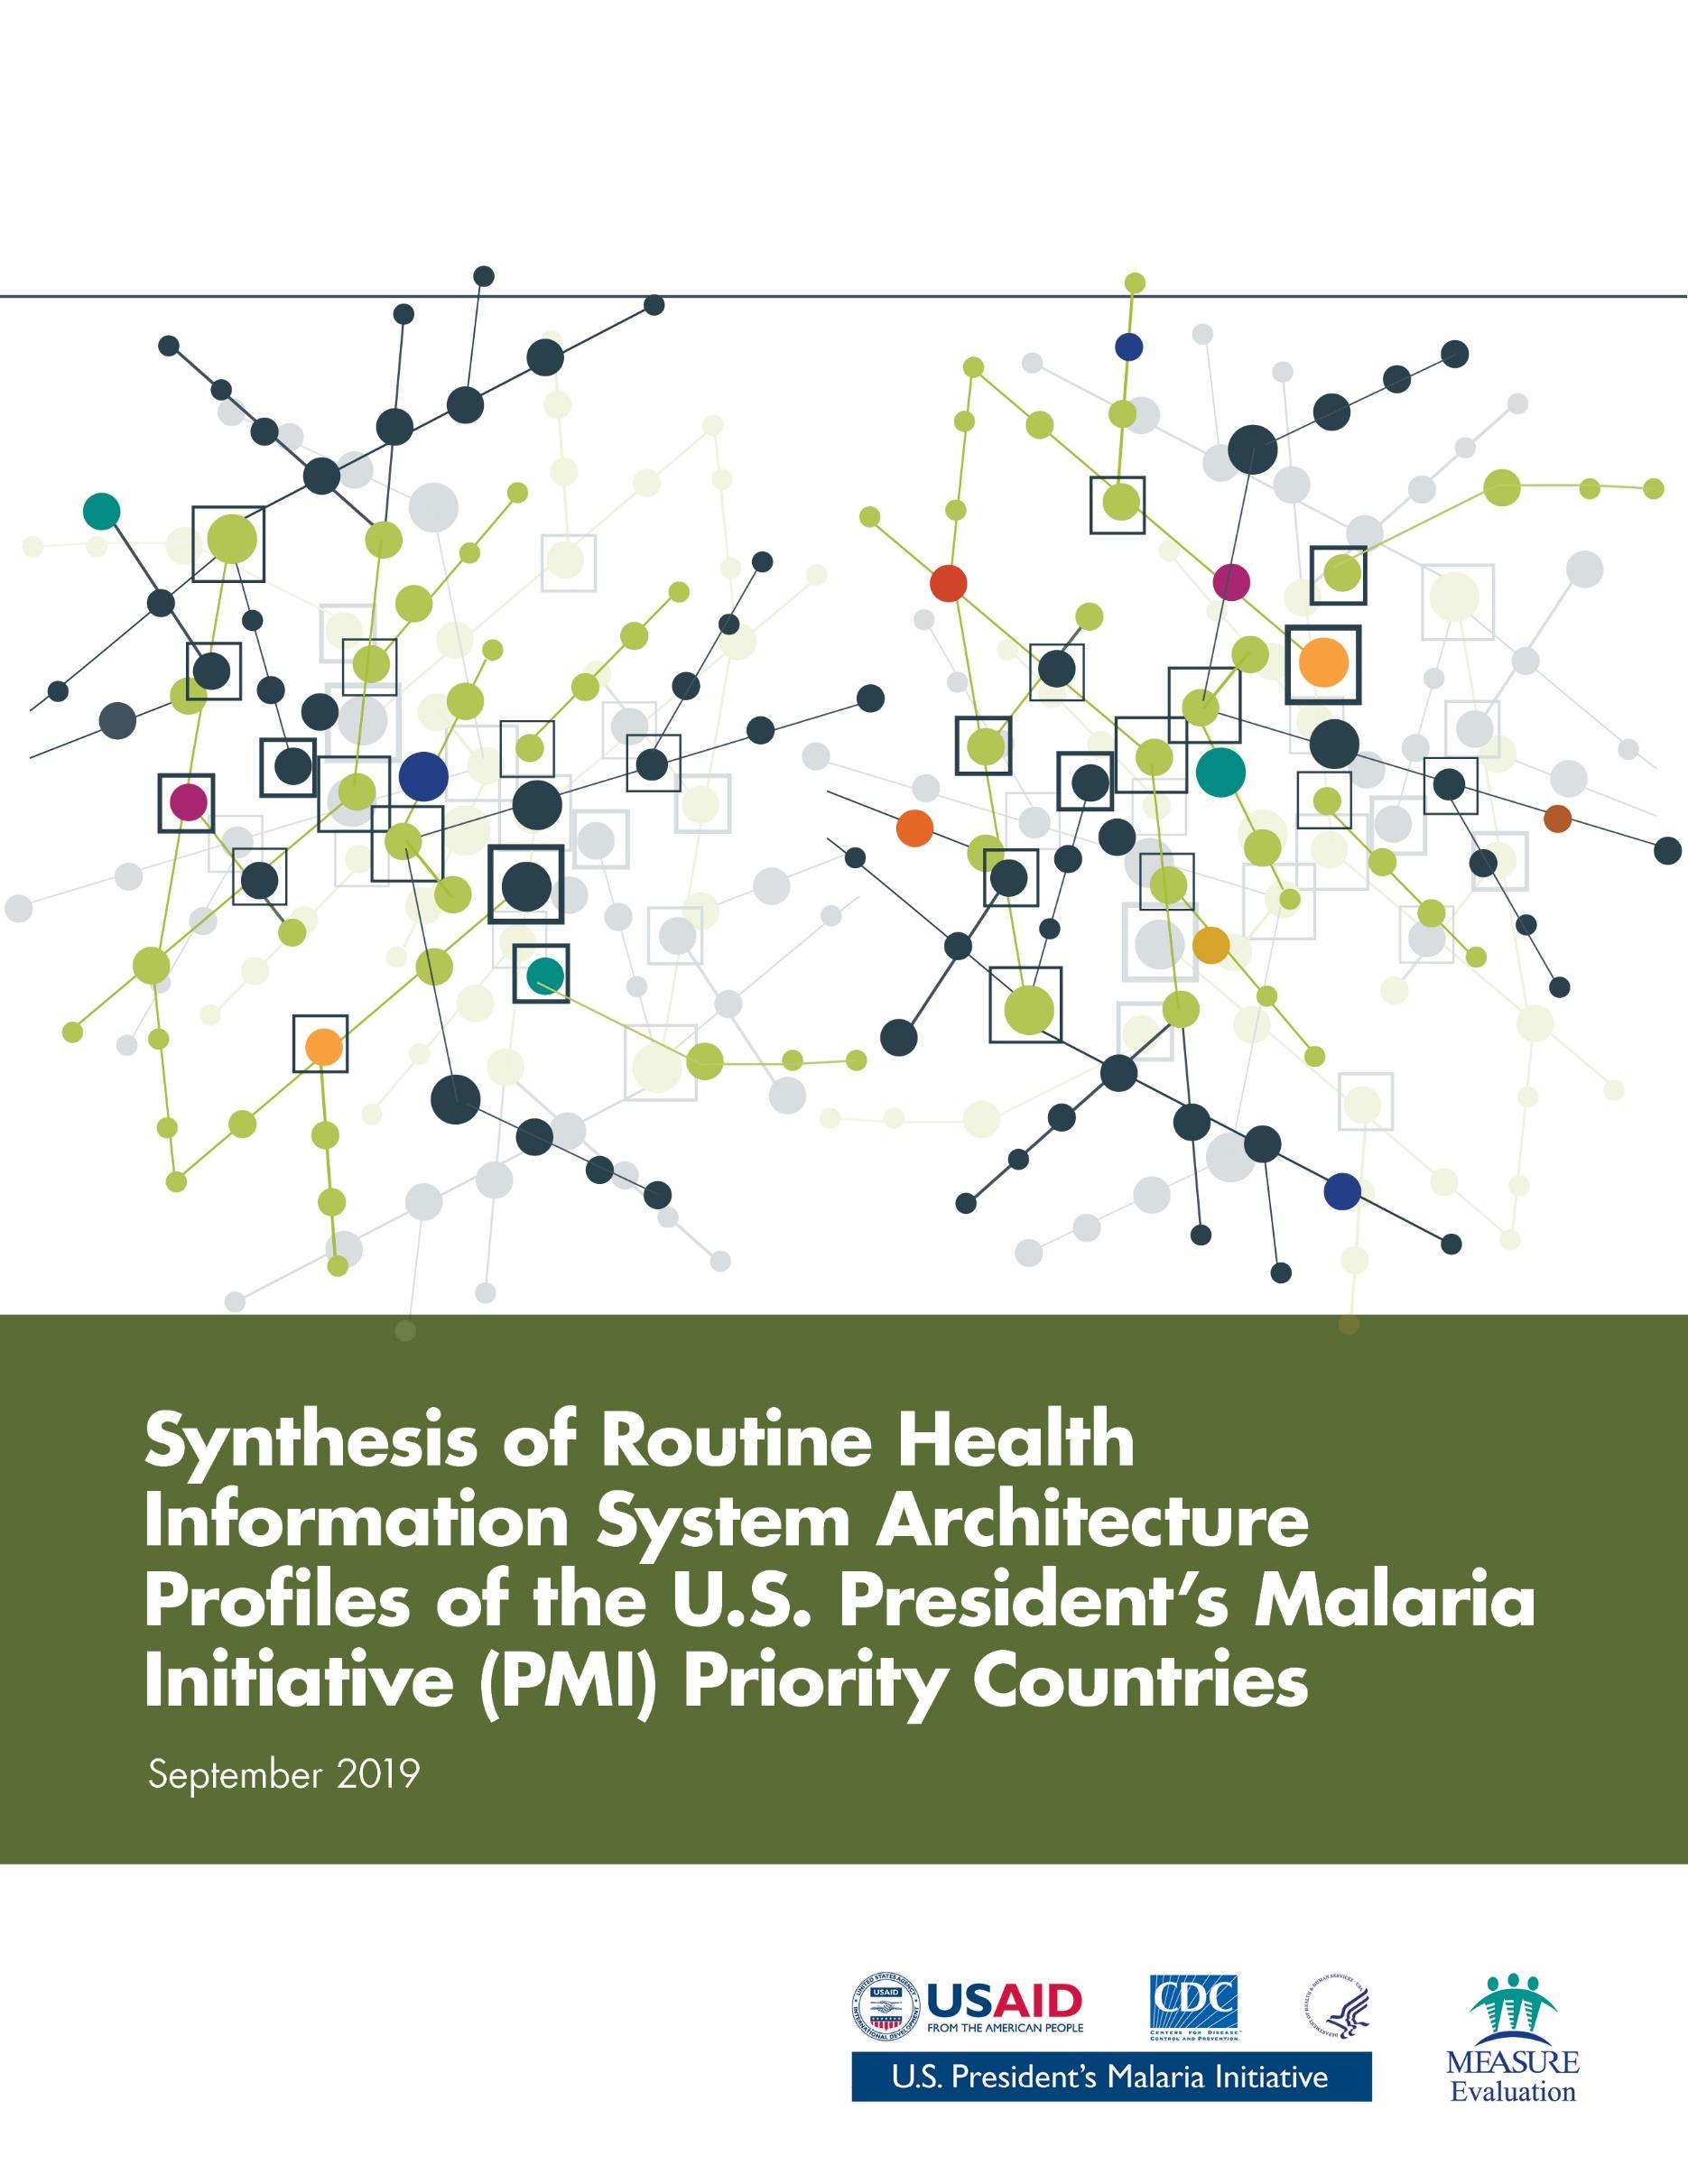 Synthesis of Routine Health Information System Architecture Profiles of the U.S. President's Malaria Initiative (PMI) Priority Countries